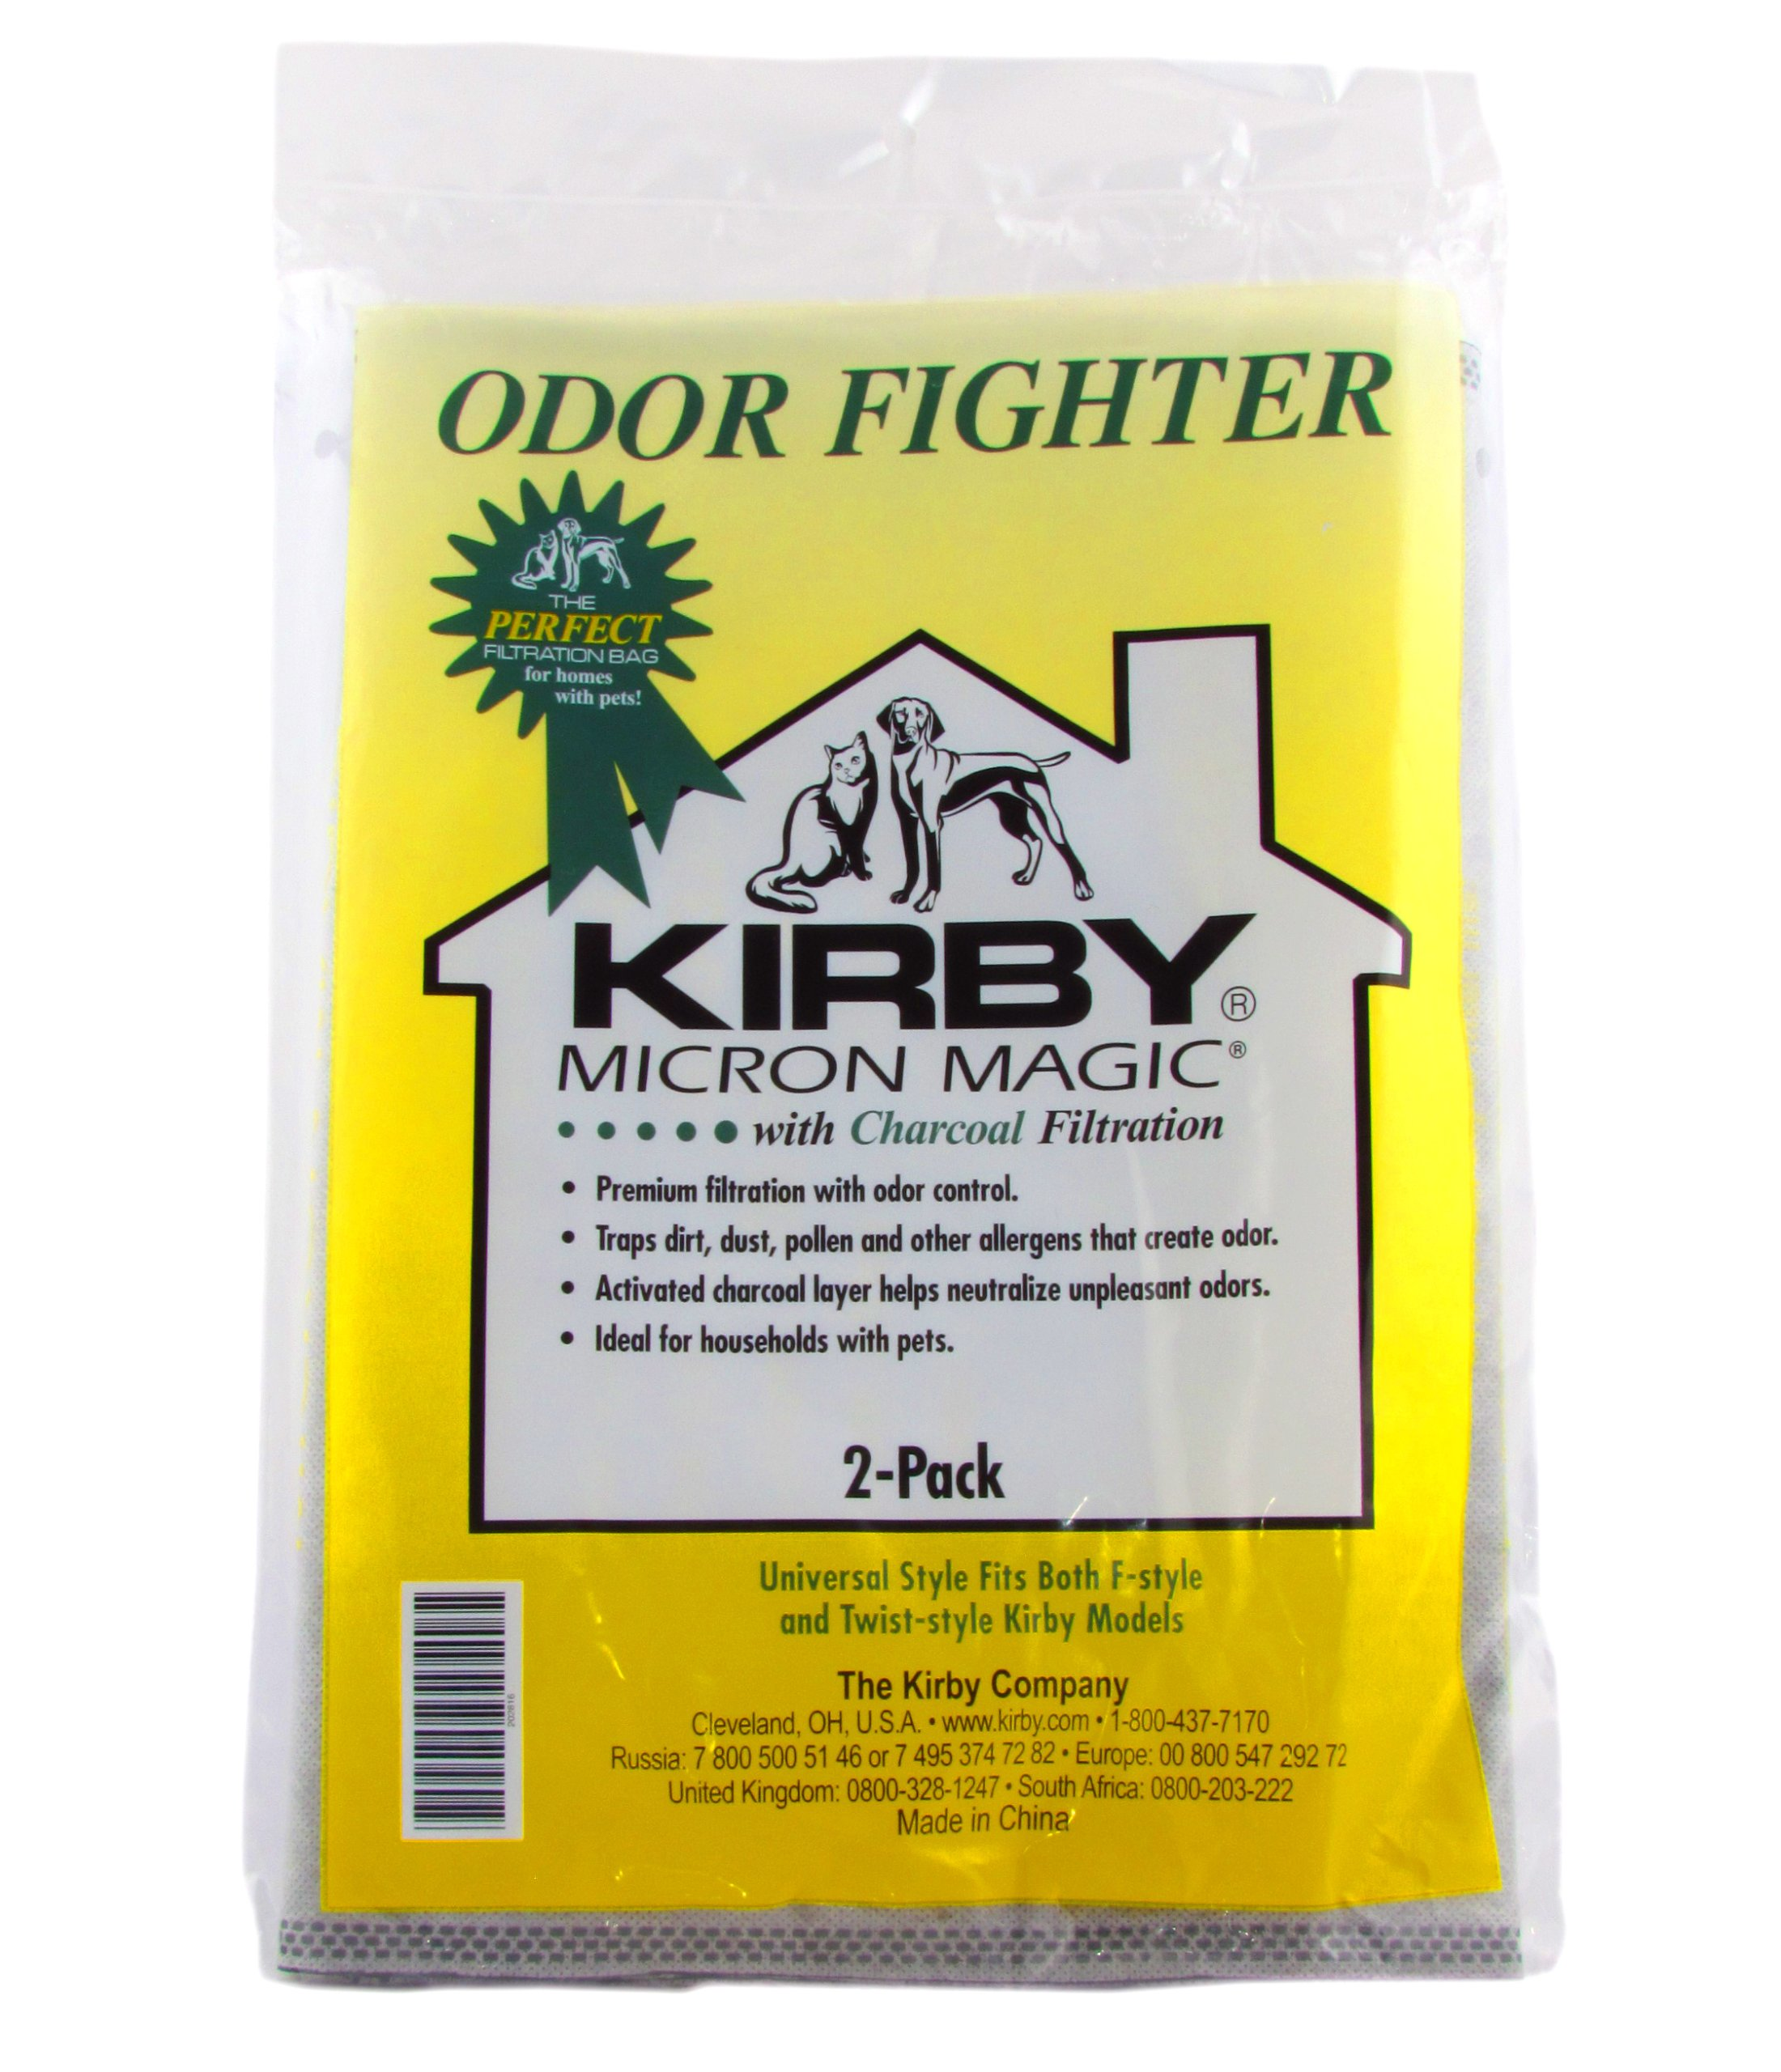 KIRBY VACUUM CLEANER BROWN PAPER BAGS G3 G4 G5 G6 ULTIMATE G G7 G7D MICRON MAGIC